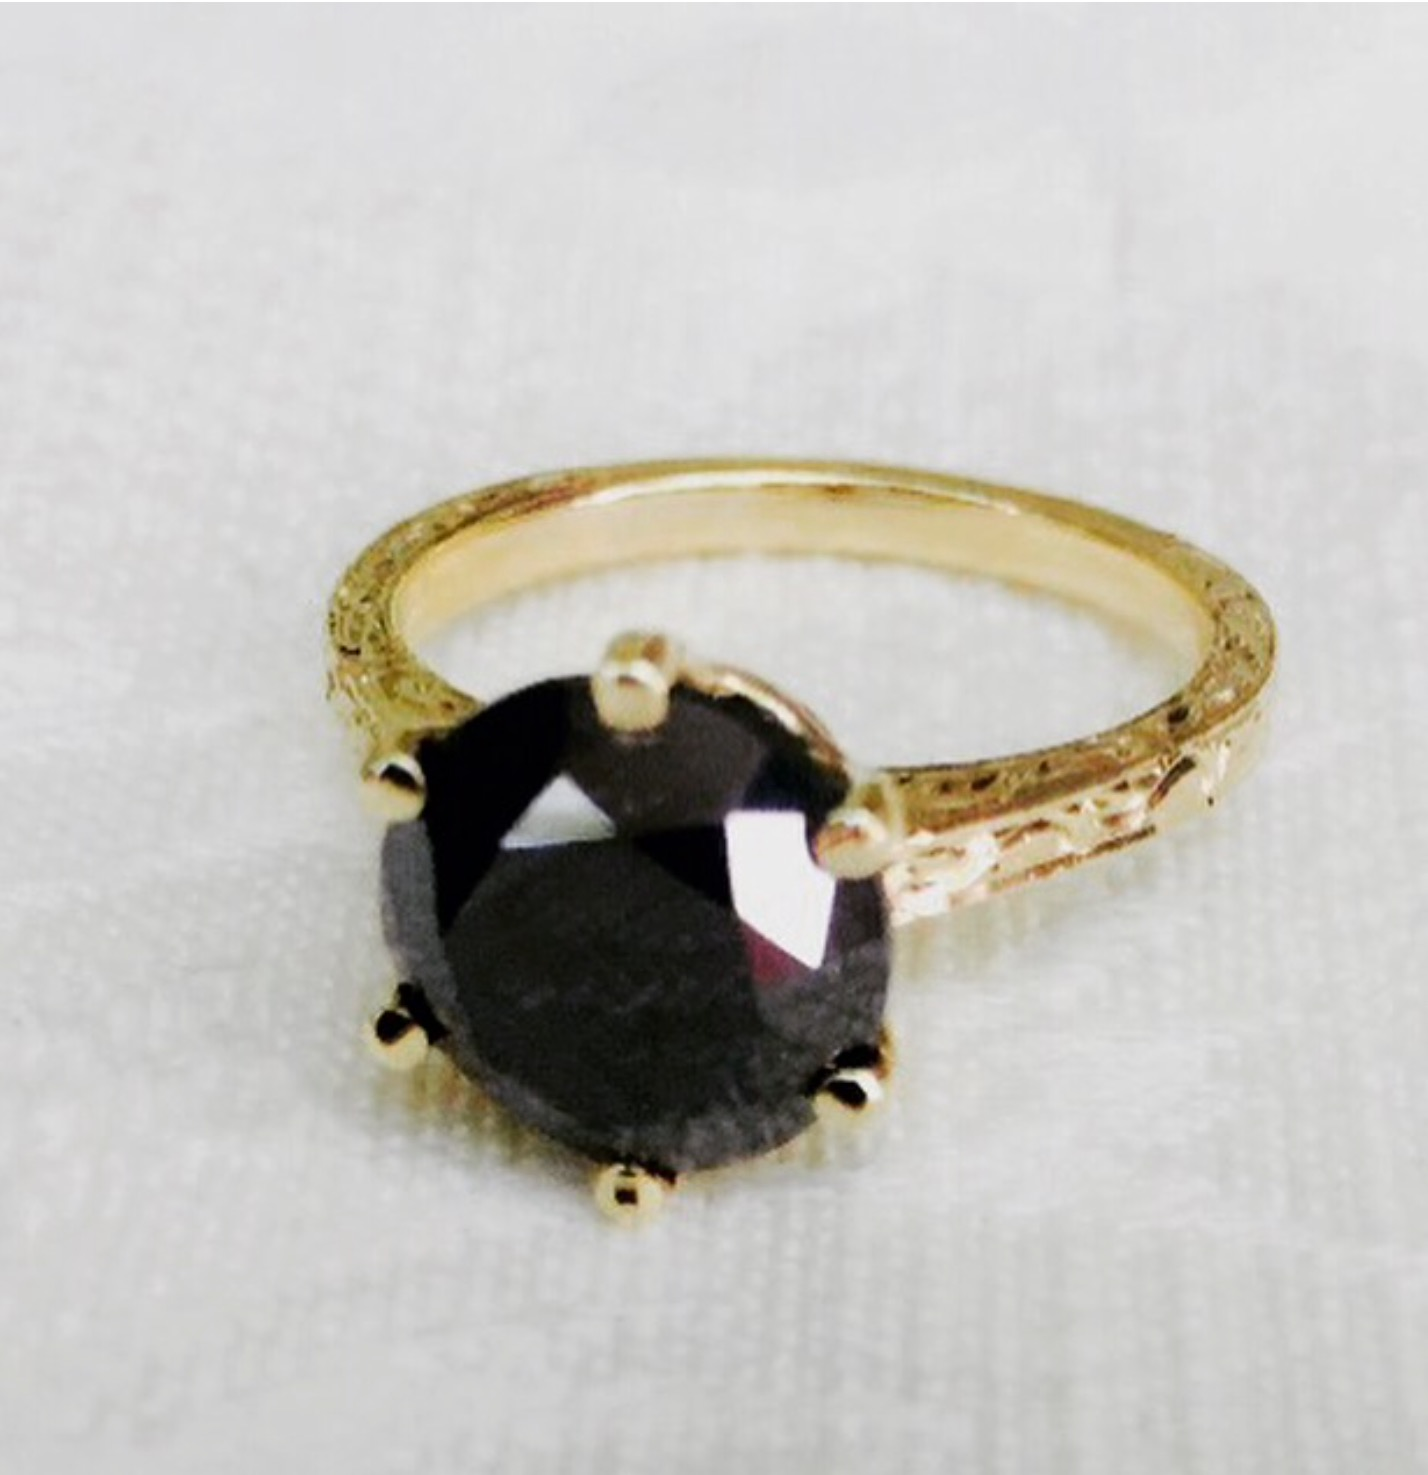 Custom made supplying this 2 carat black diamond and designed and made this 18k yellow gold mounting.